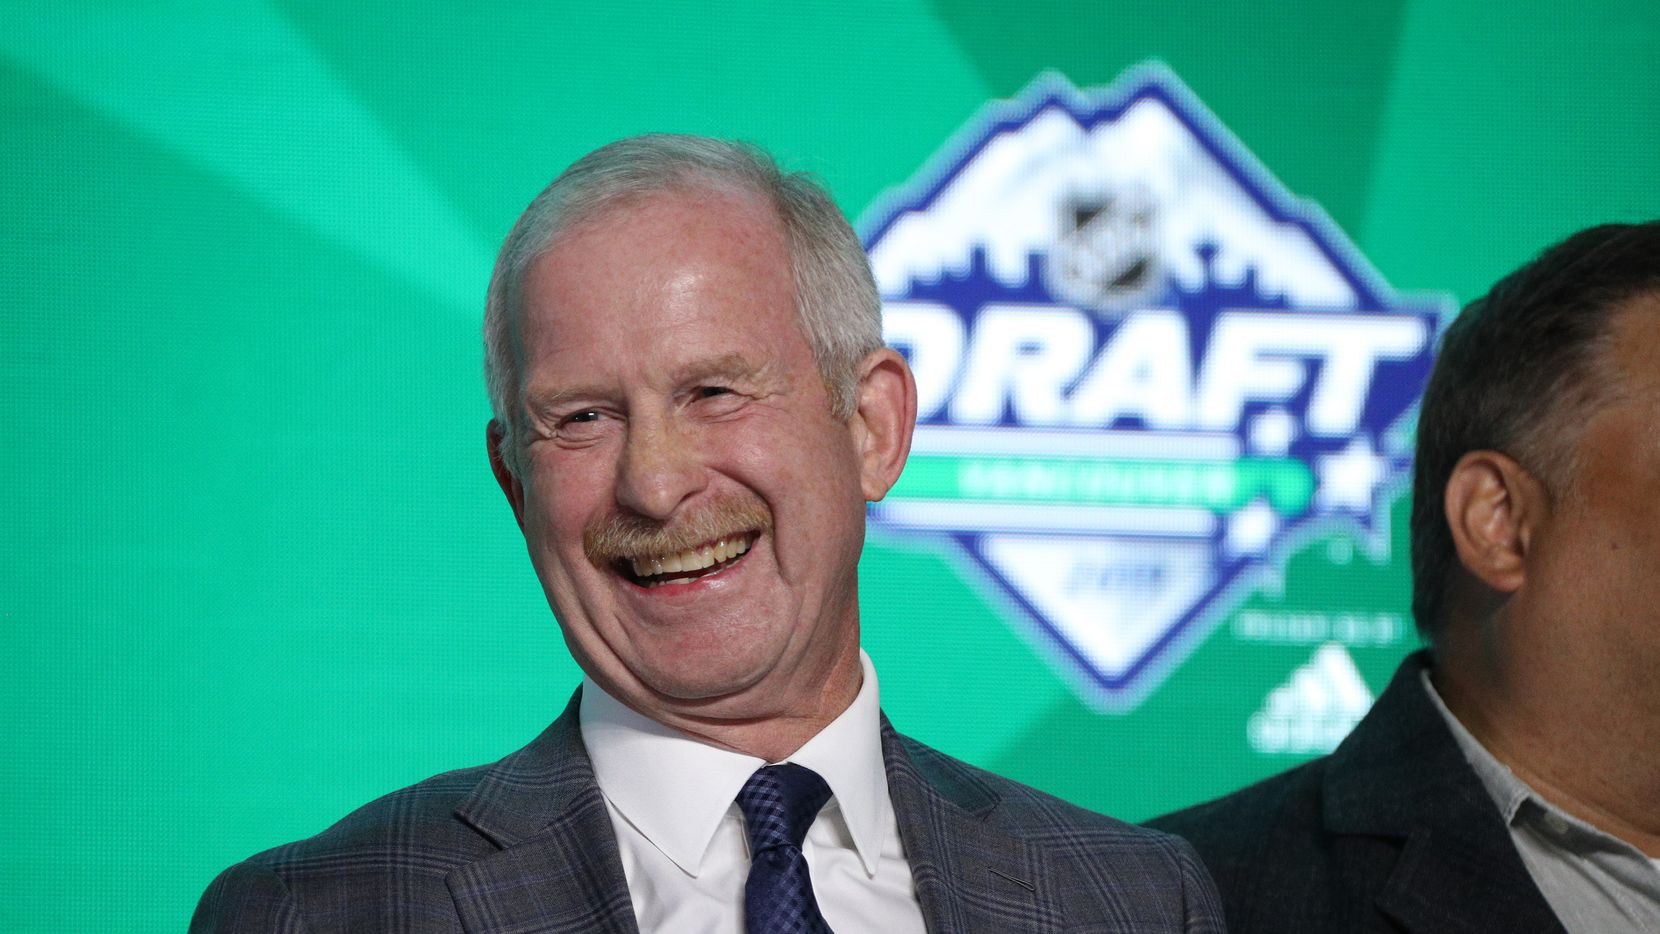 VANCOUVER, BRITISH COLUMBIA - JUNE 21: General Manager Jim Nill of the Dallas Stars stands onstage during the first round of the 2019 NHL Draft at Rogers Arena on June 21, 2019 in Vancouver, Canada.